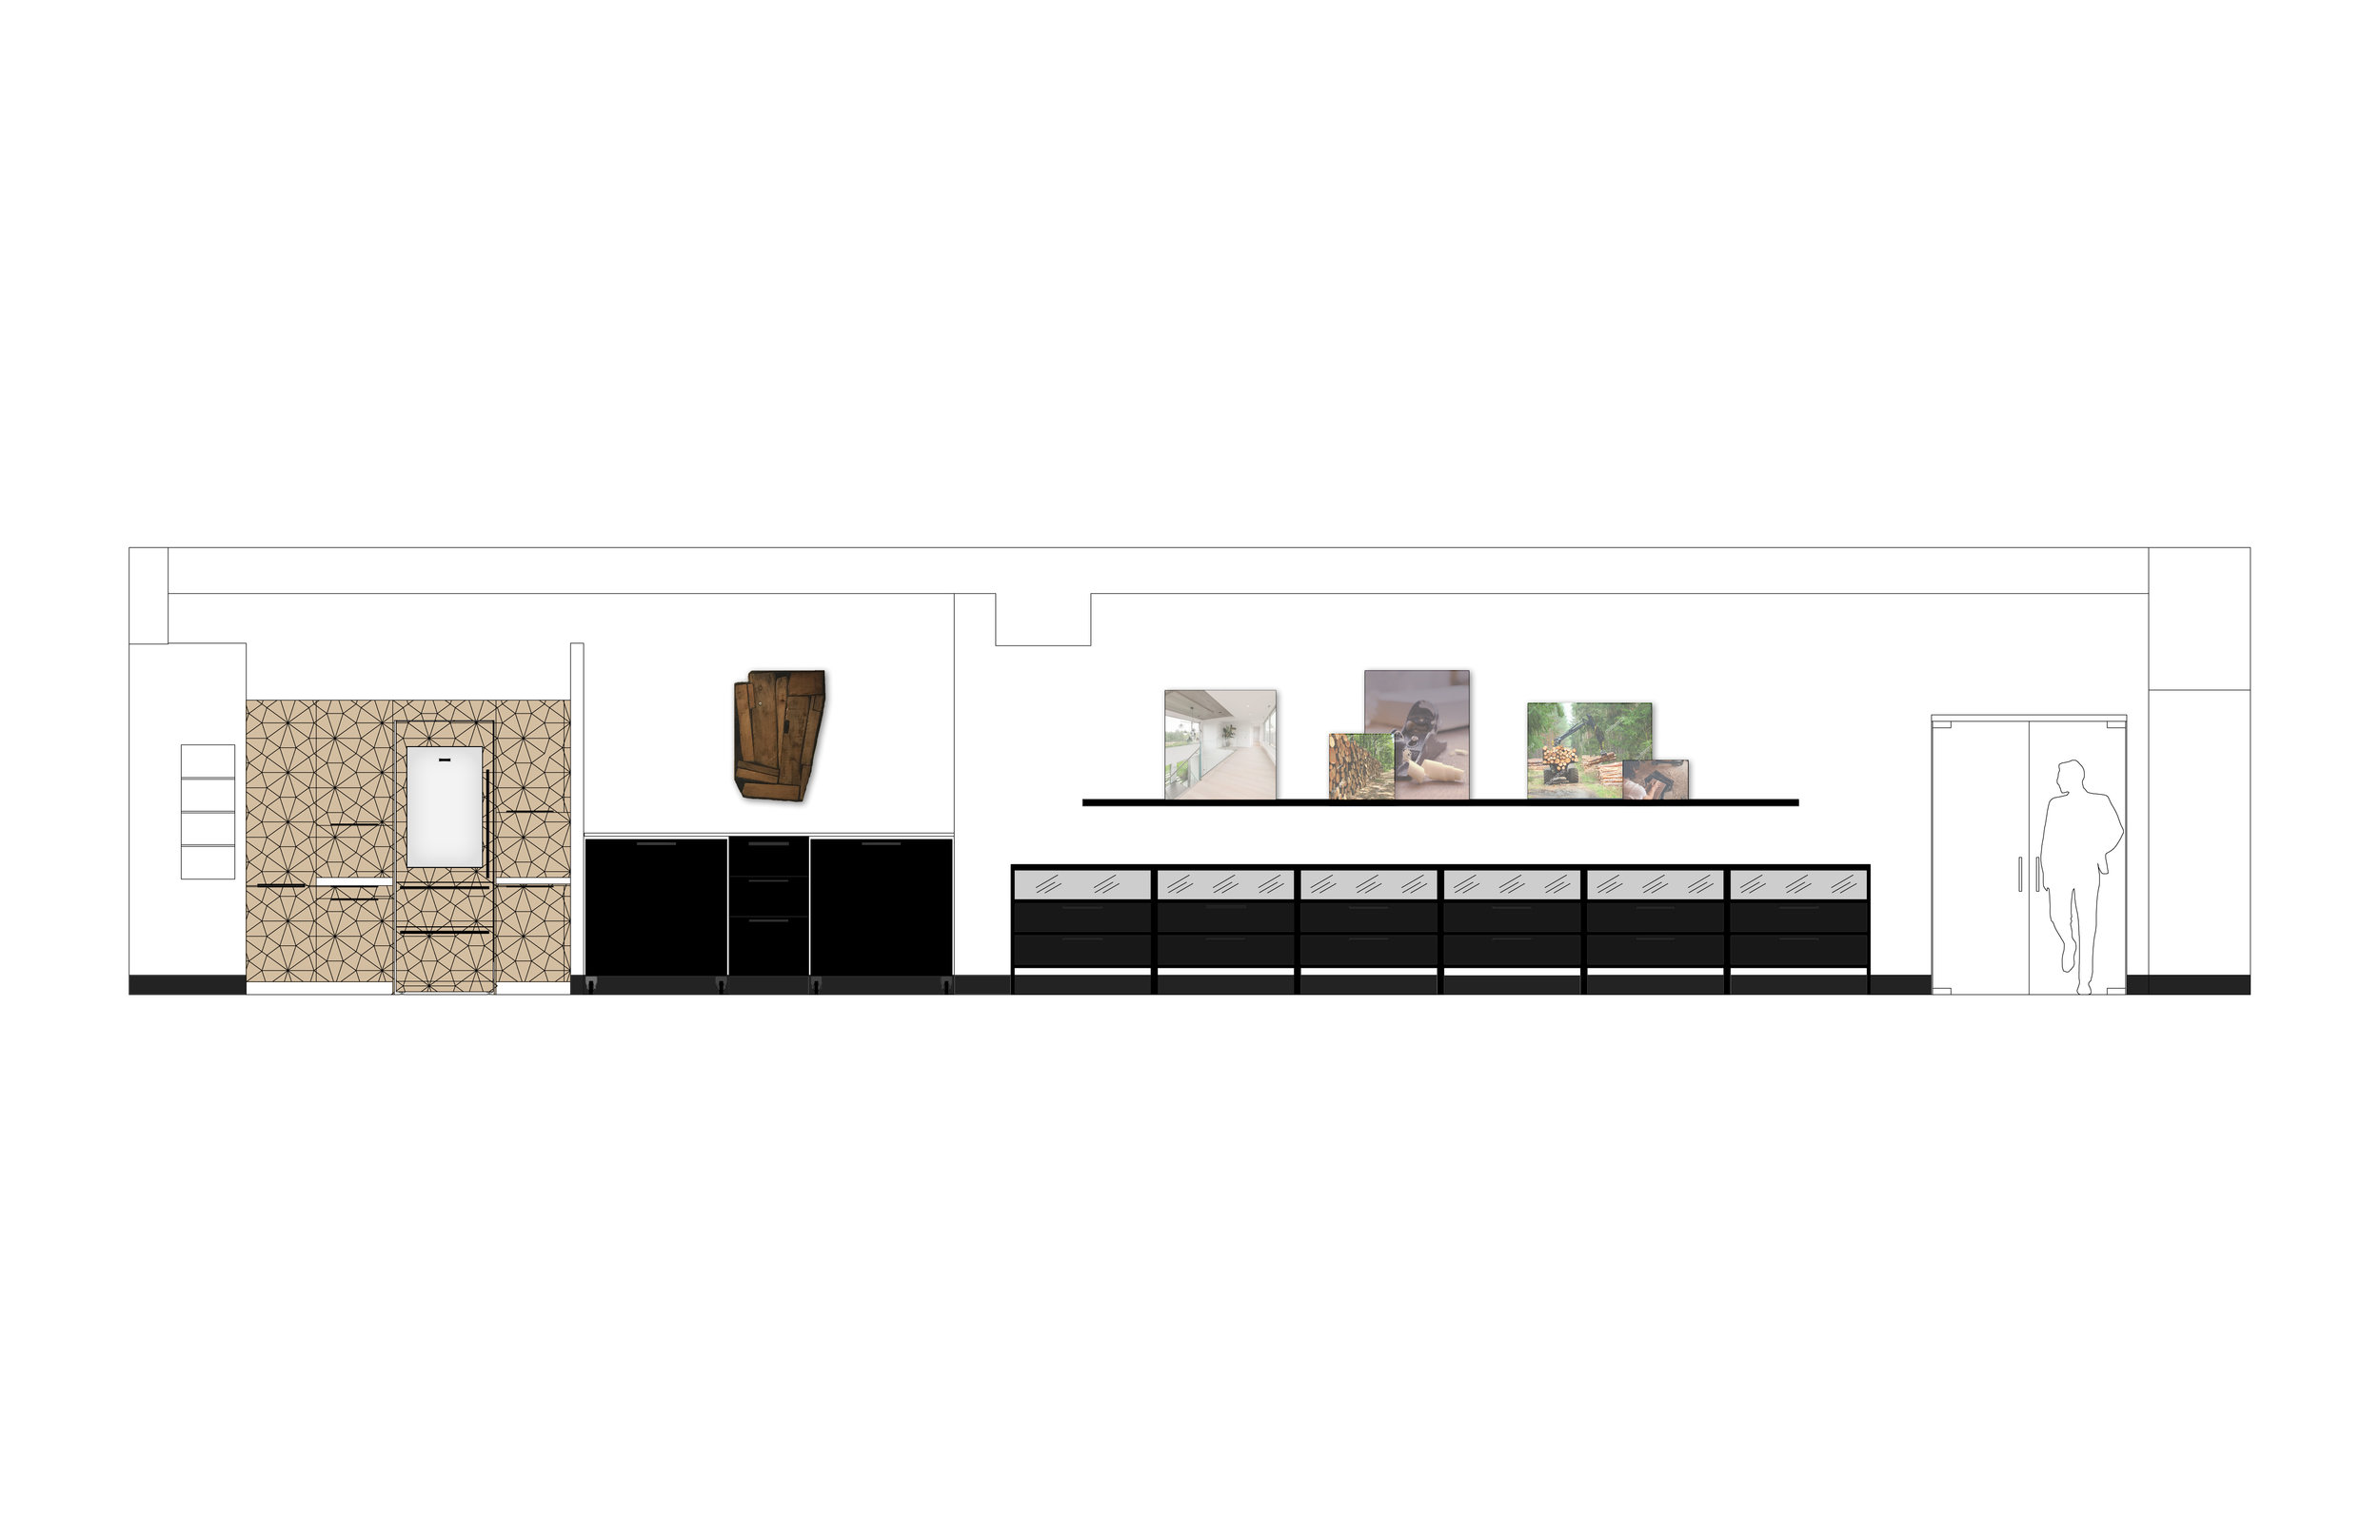 (1) Display Case Wall Elevation - Option 1.jpg